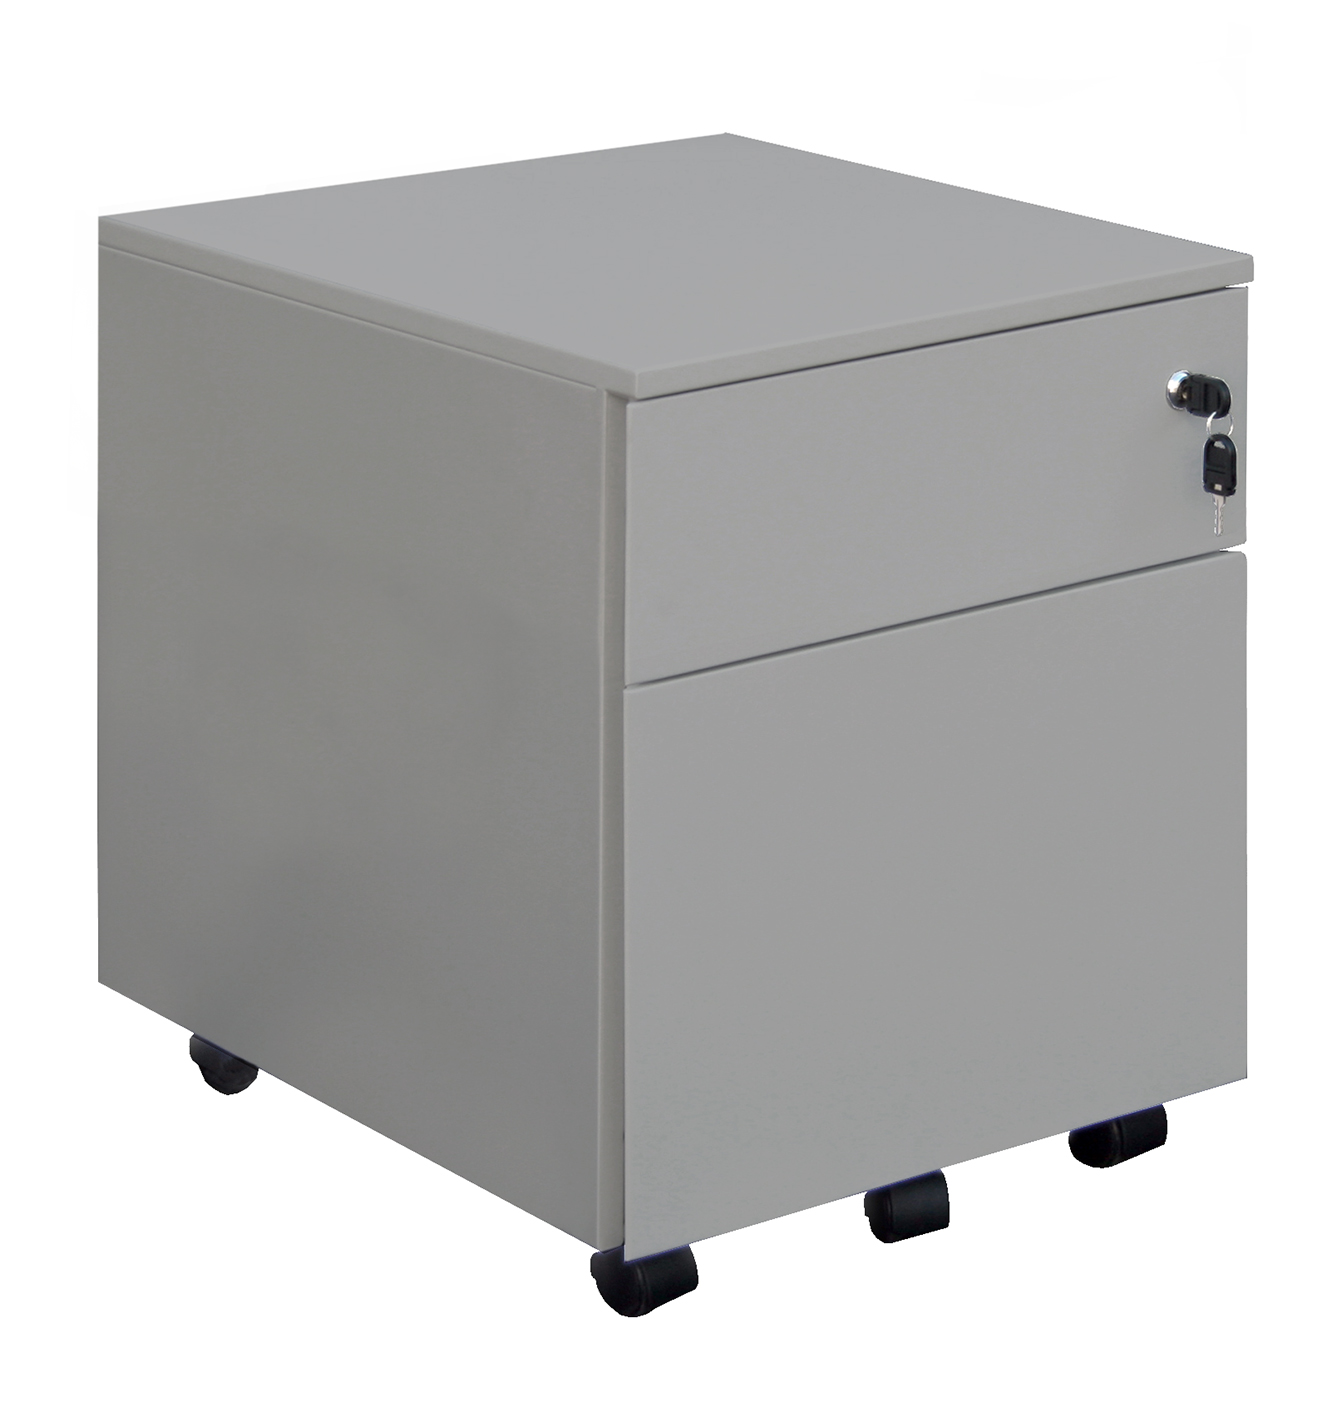 clearance ddk commercial office furniture black metal filing cabinets 4 drawer 4 drawer metal filing cabinet dimensions